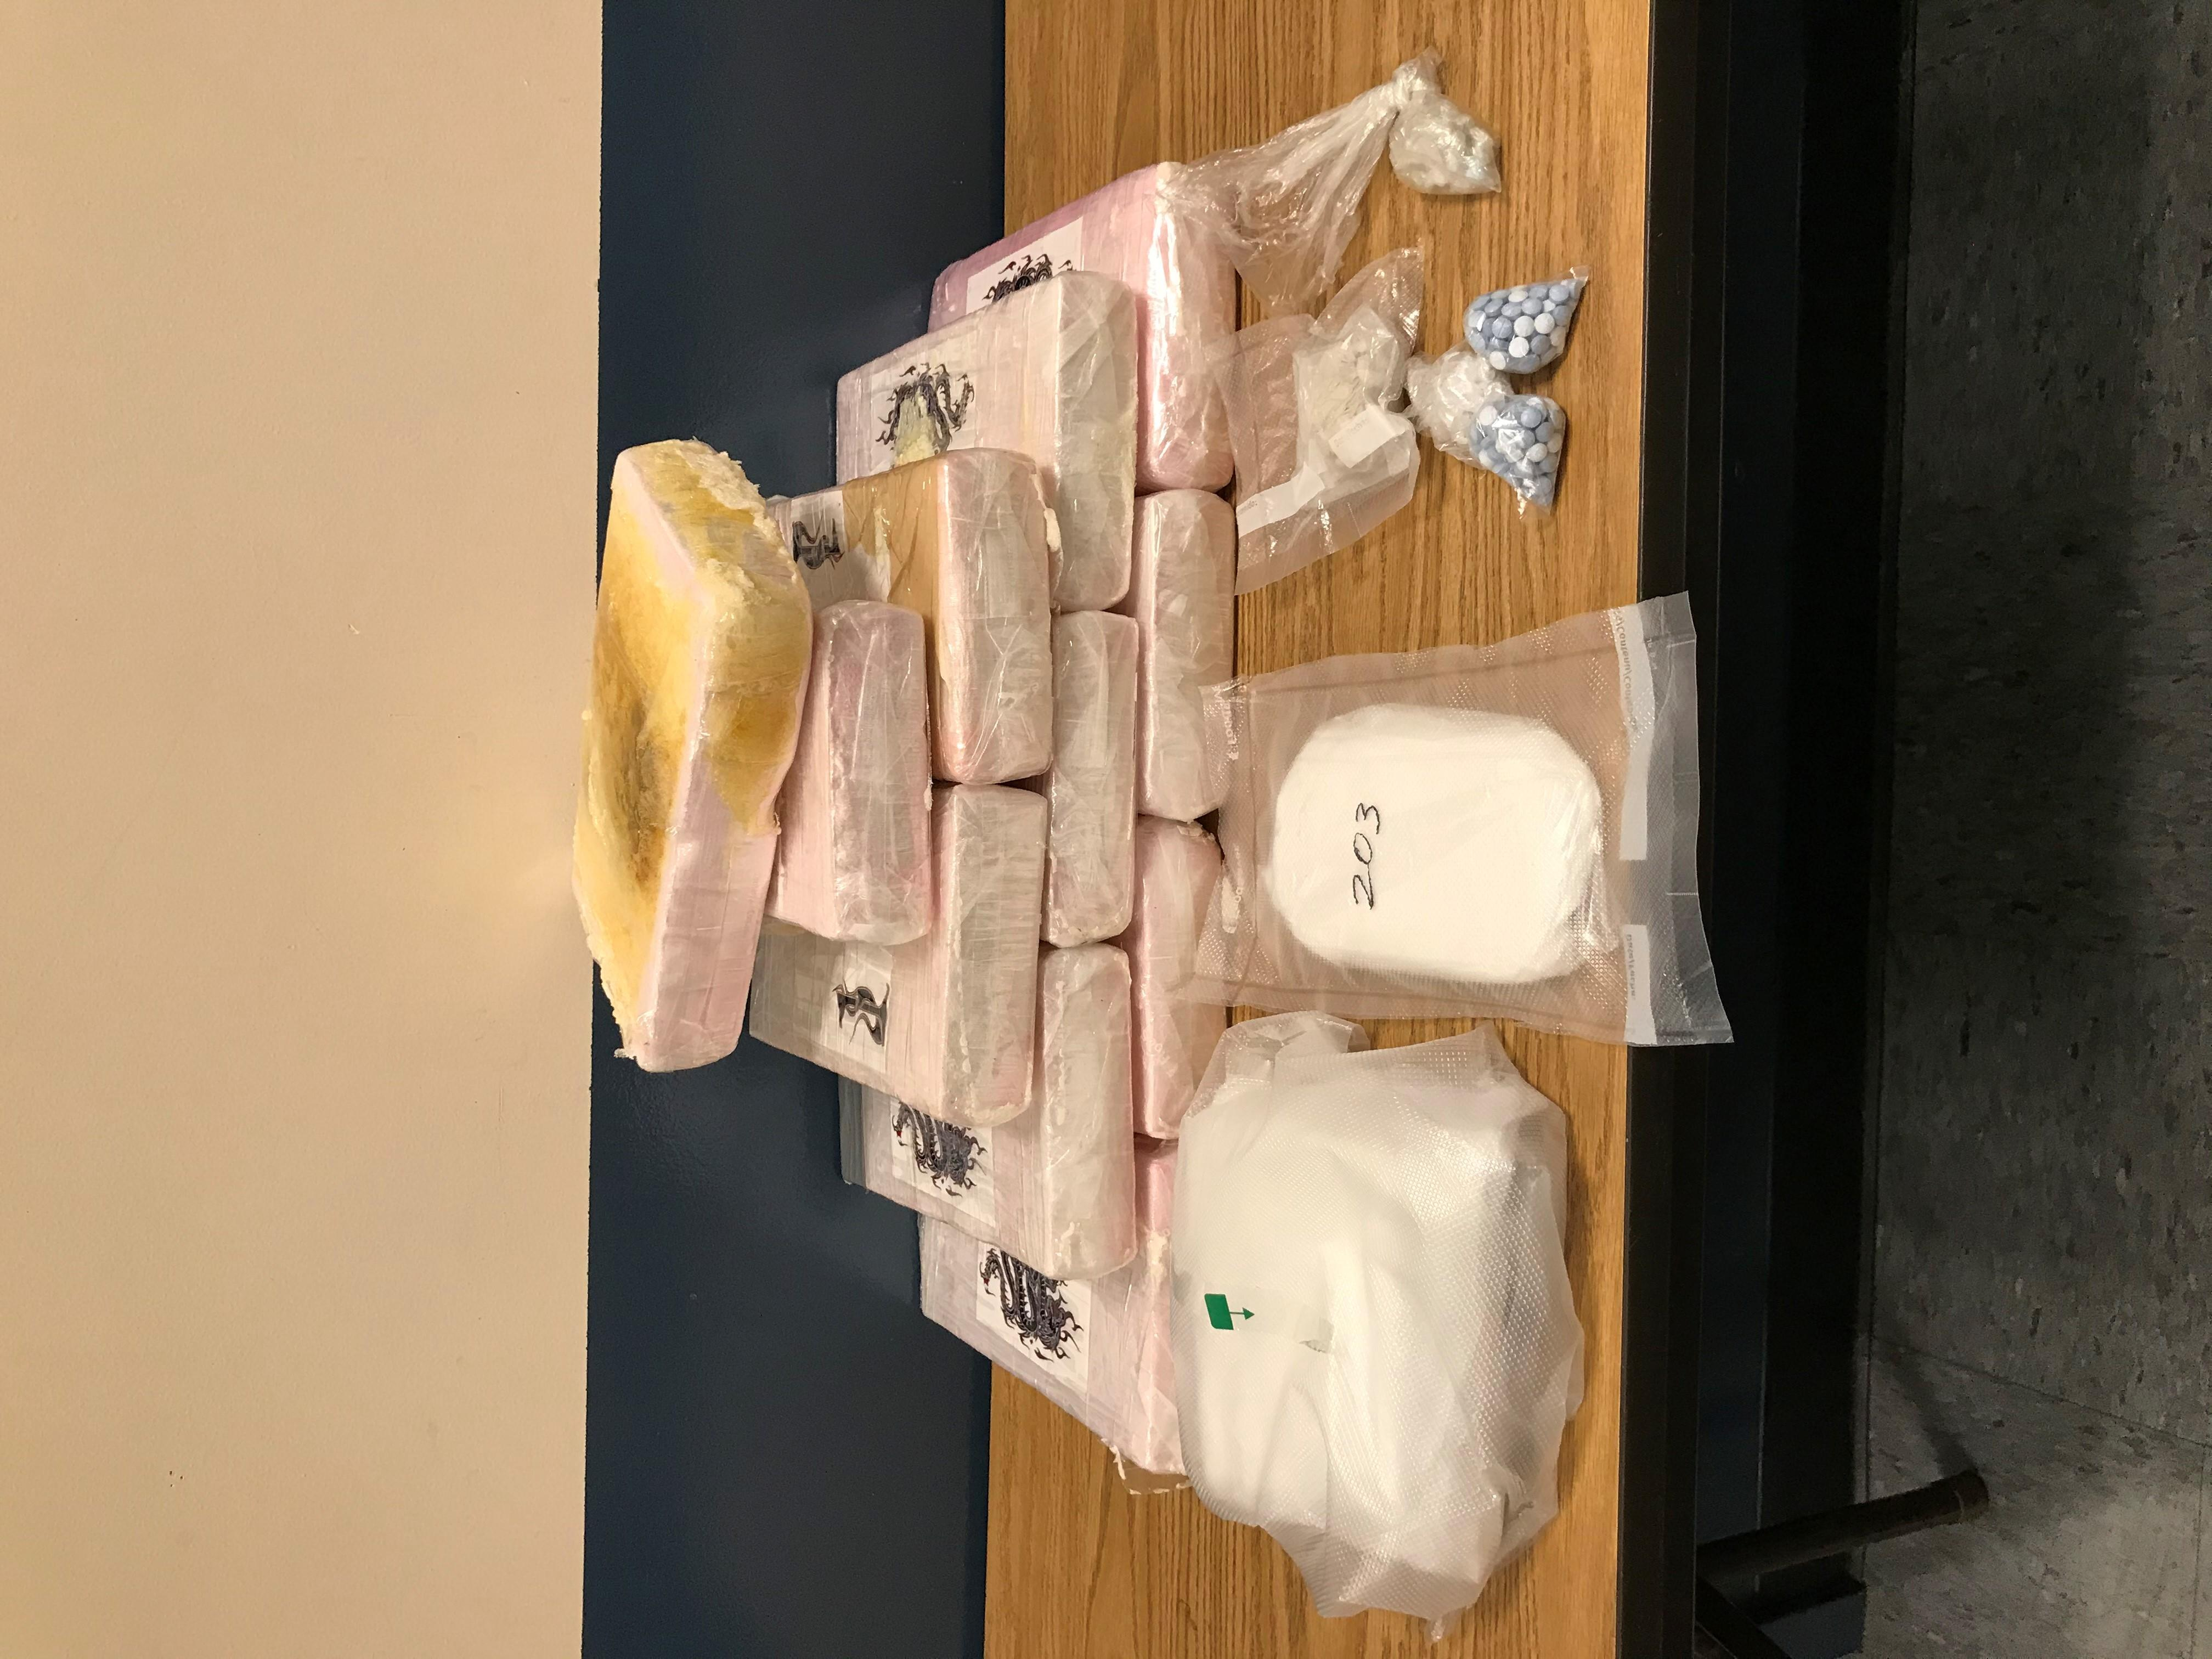 Over 25 pounds of cocaine seized